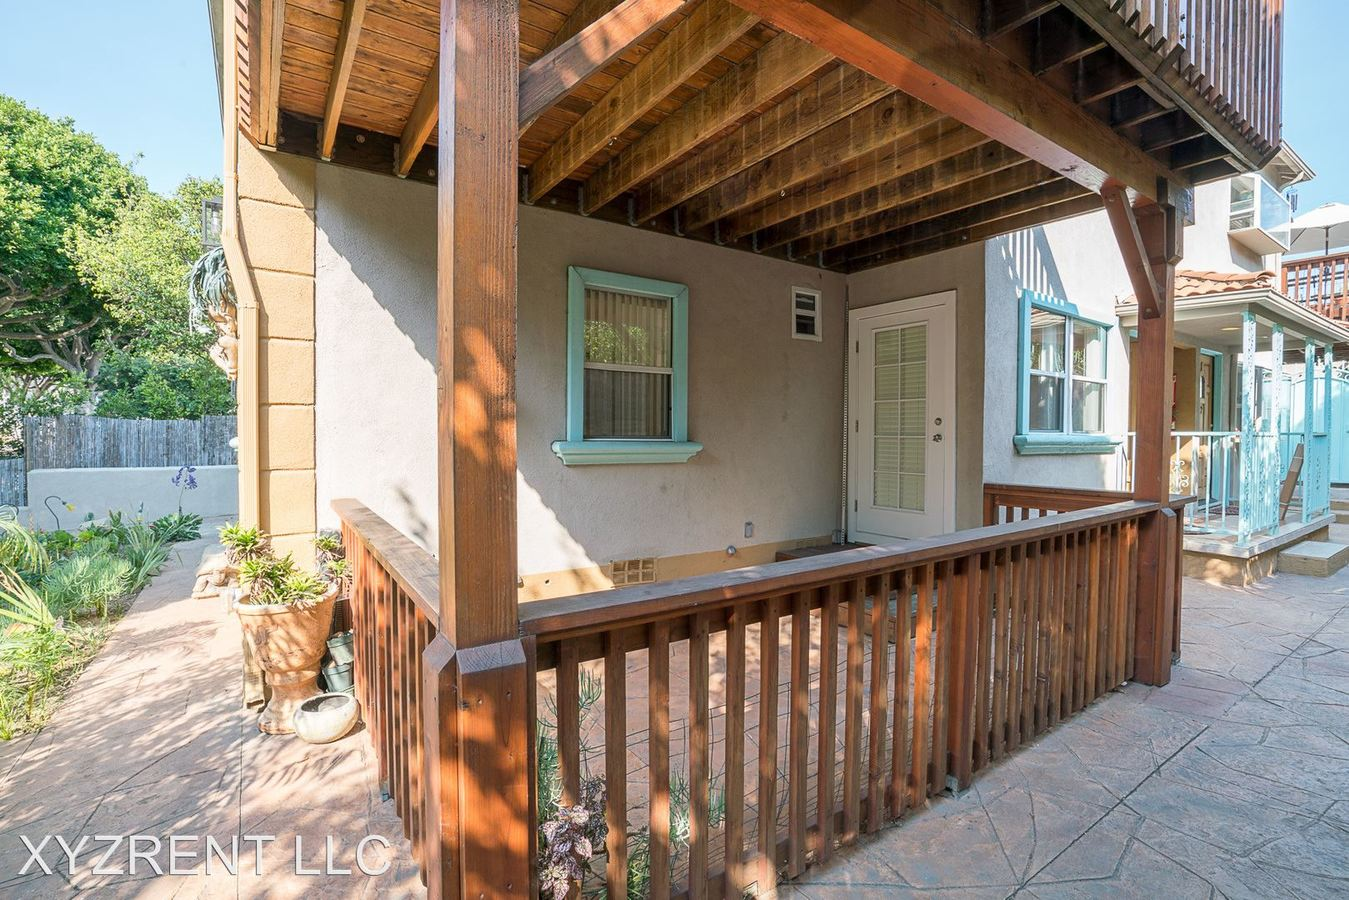 2 Bedrooms 2 Bathrooms Apartment for rent at 1024 Maple St. in Santa Monica, CA